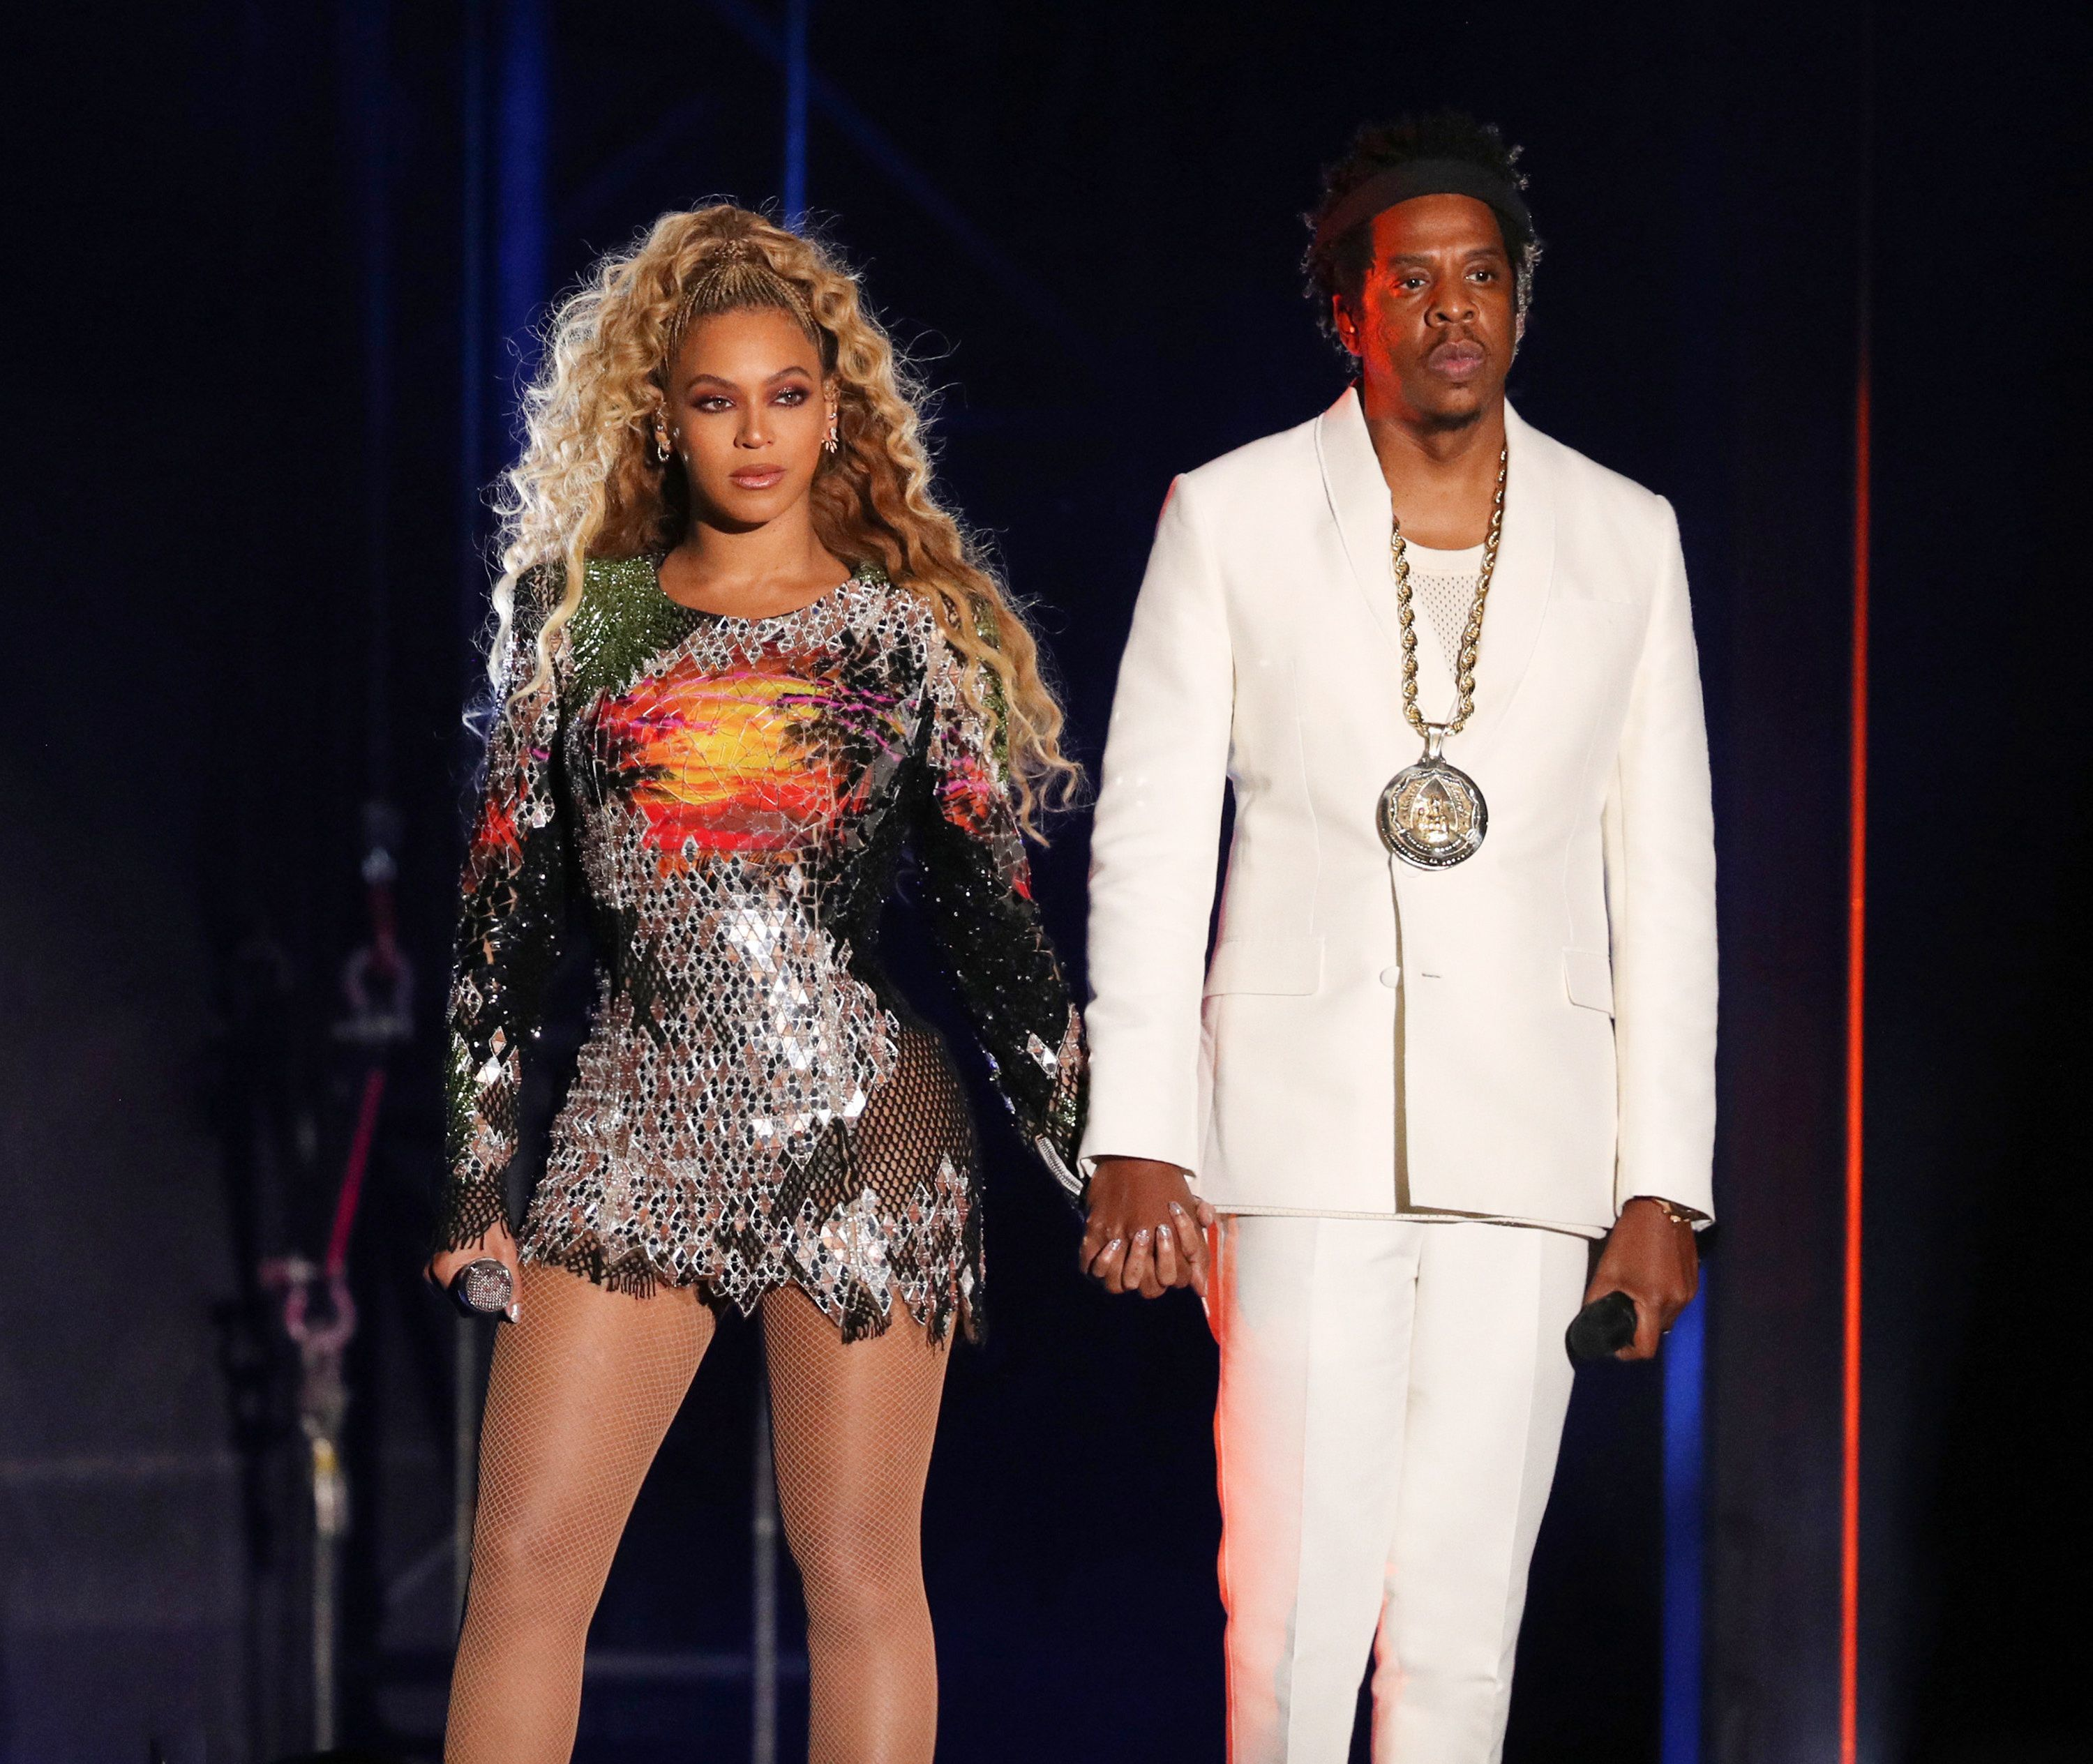 Beyonce and JAY Z perform in Detroit on Aug. 13, 2018.